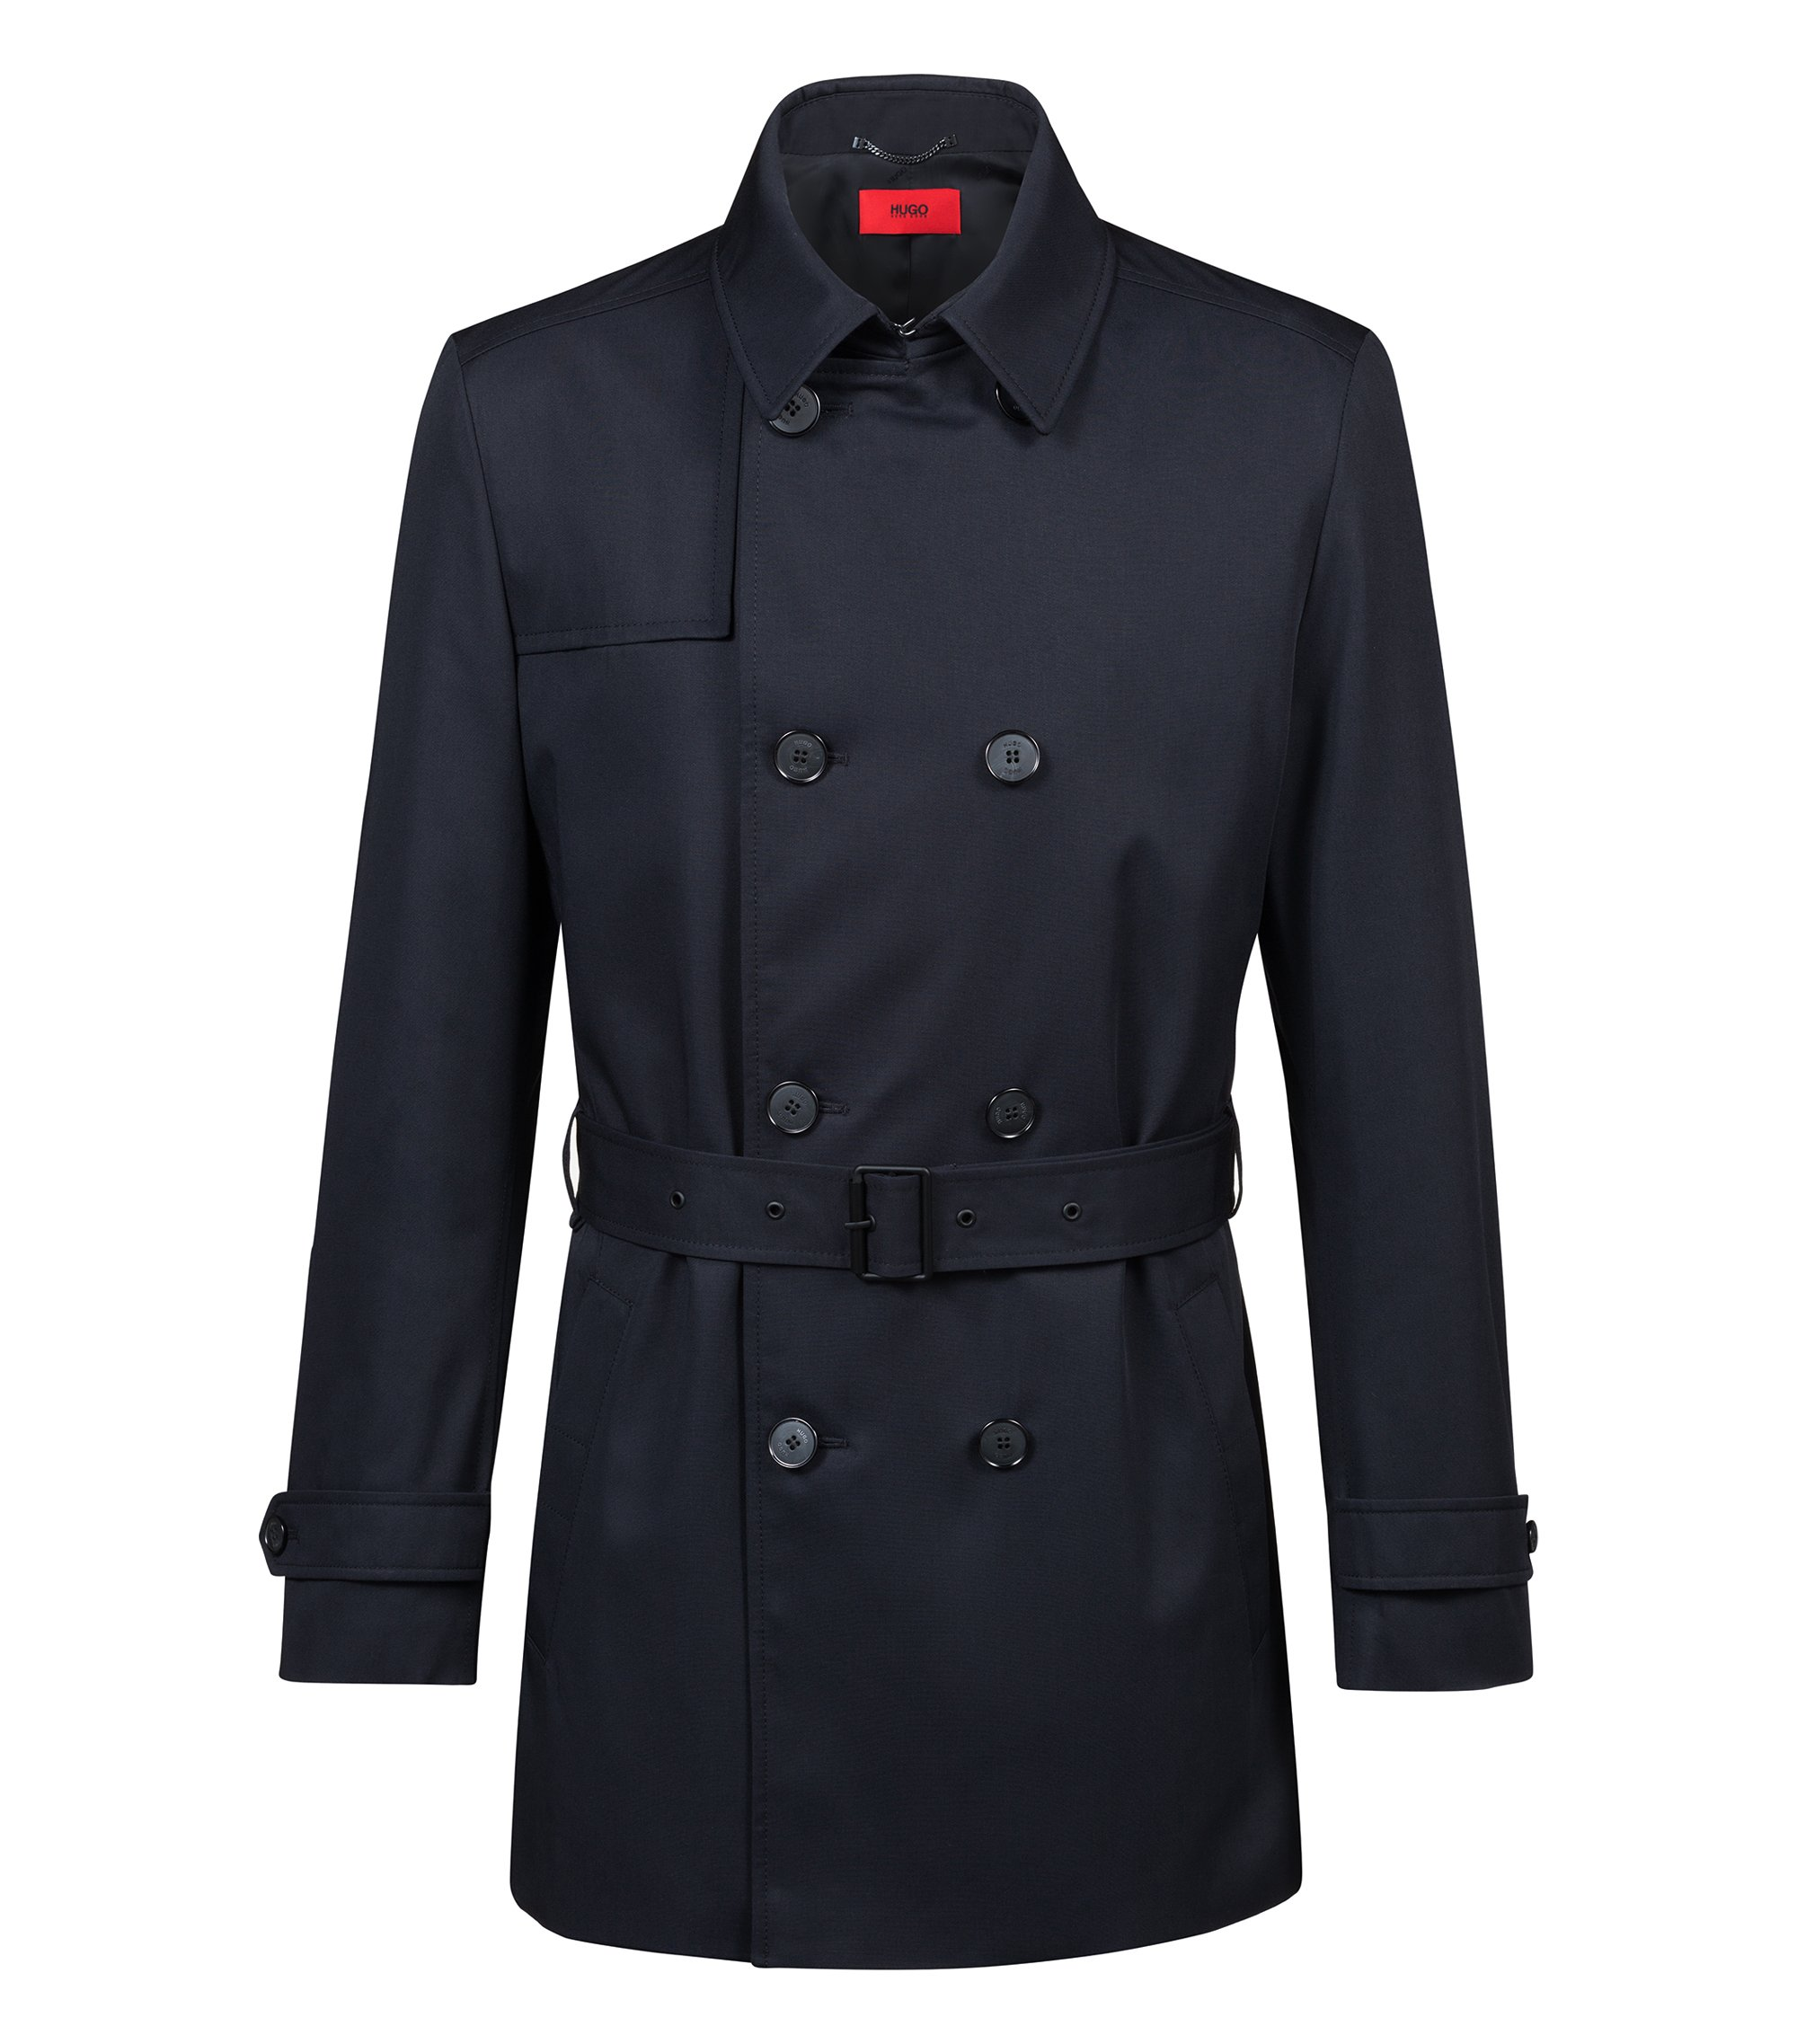 Trench-coat Slim Fit en tissu technique imperméable, Noir